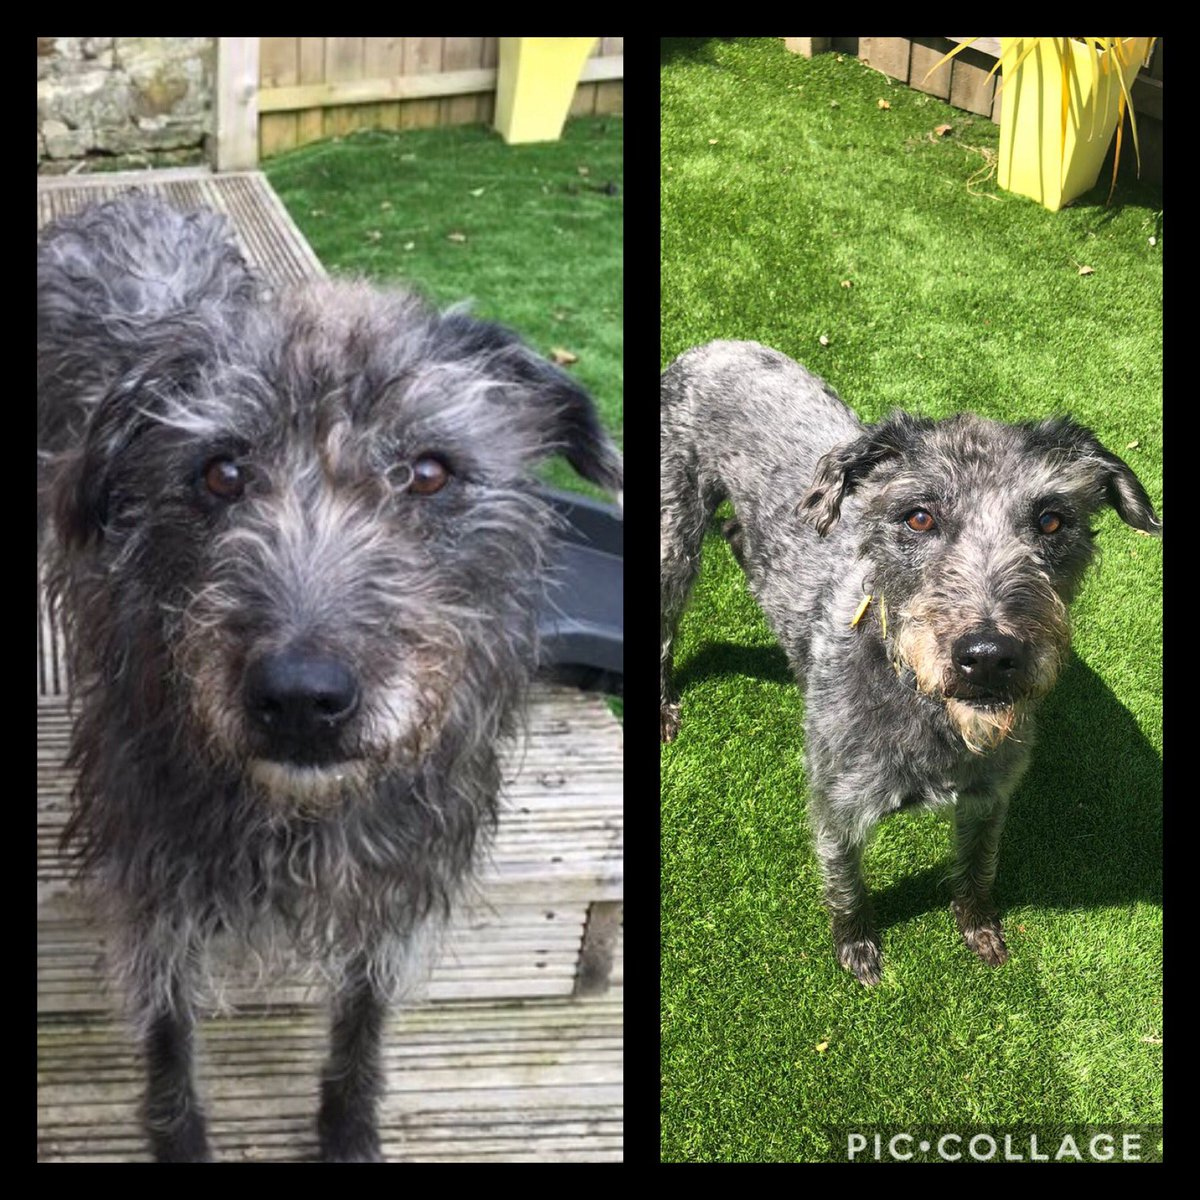 Brodie  has had a hair cut! Isn't he handsome! Here is a before and after picture... we know he will be feeling a lot cooler now ... #newhairday #handsome #dogstrust #DogsofTwittter #dogsofinstagrampic.twitter.com/ZhRrkv7Q0U